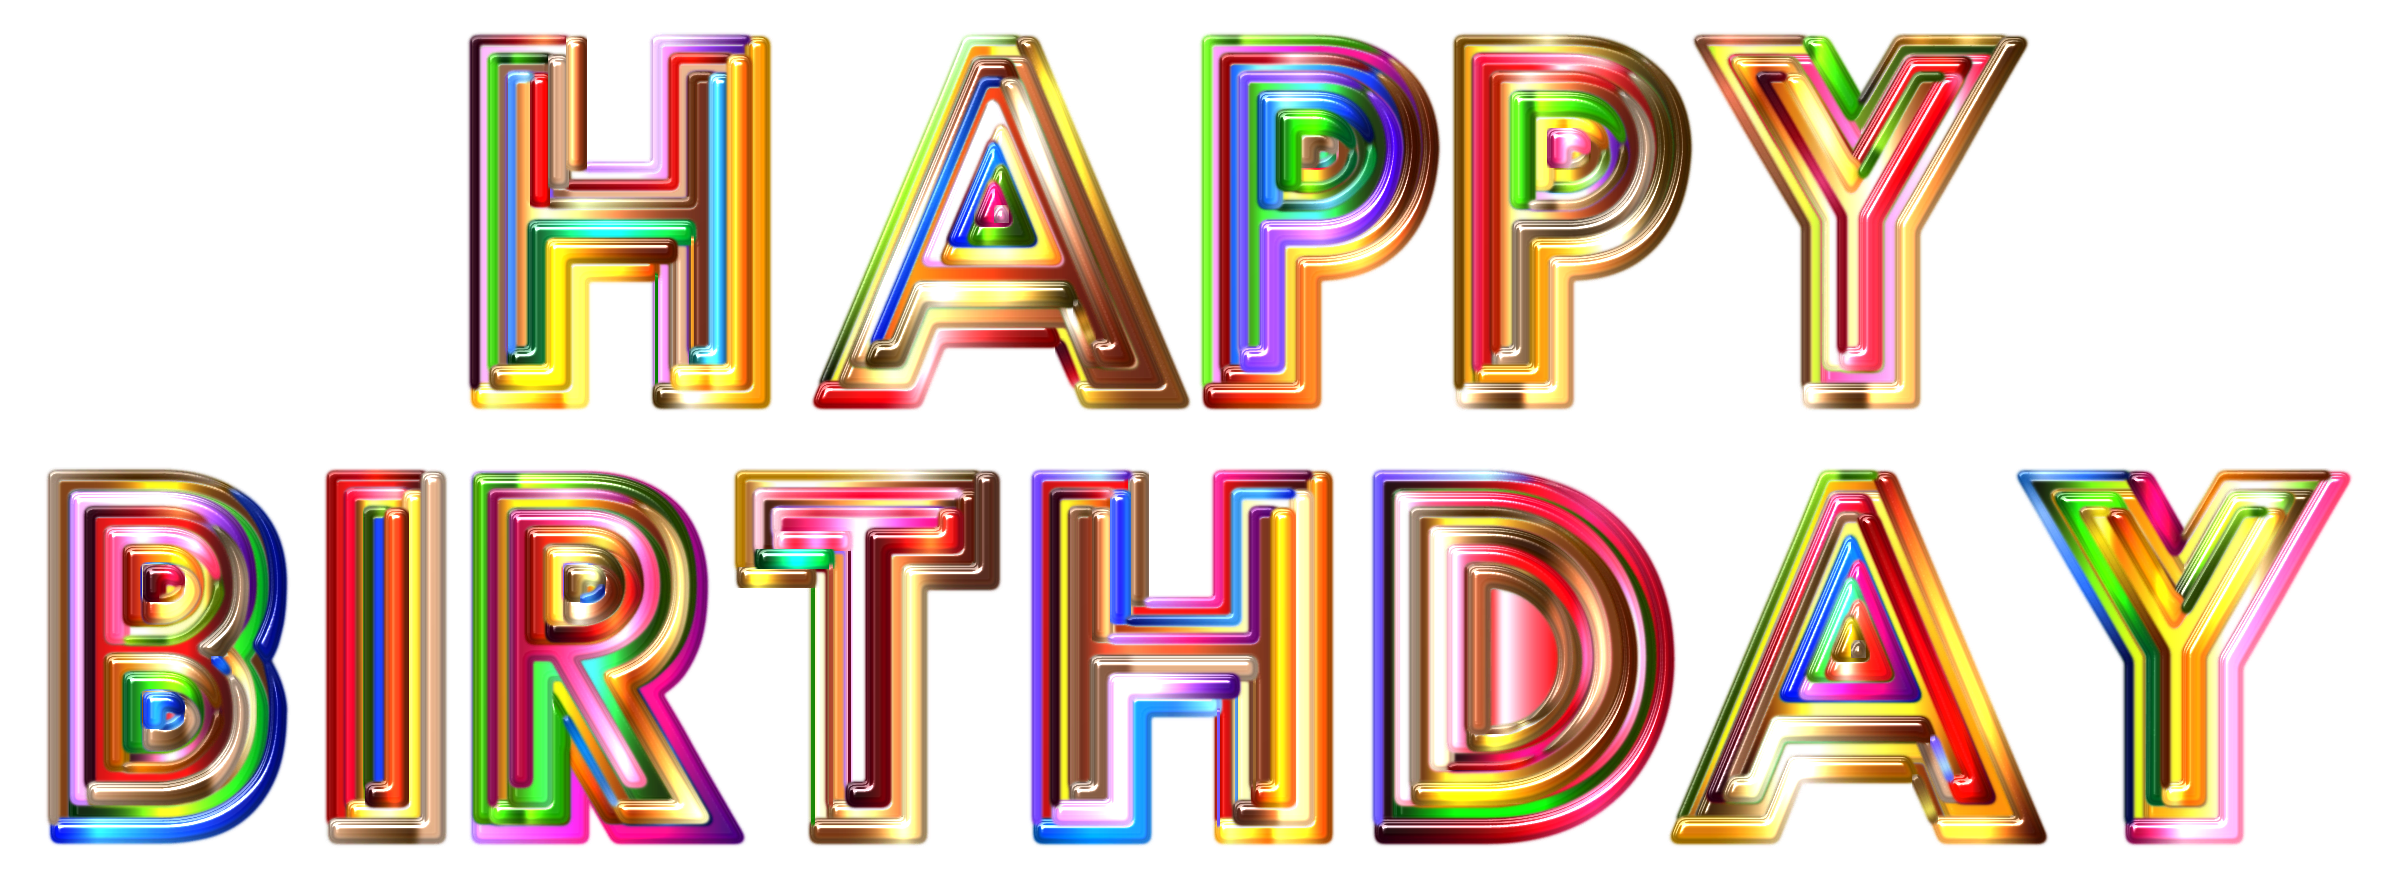 Happy birthday 3d text png. Transparent pictures free icons